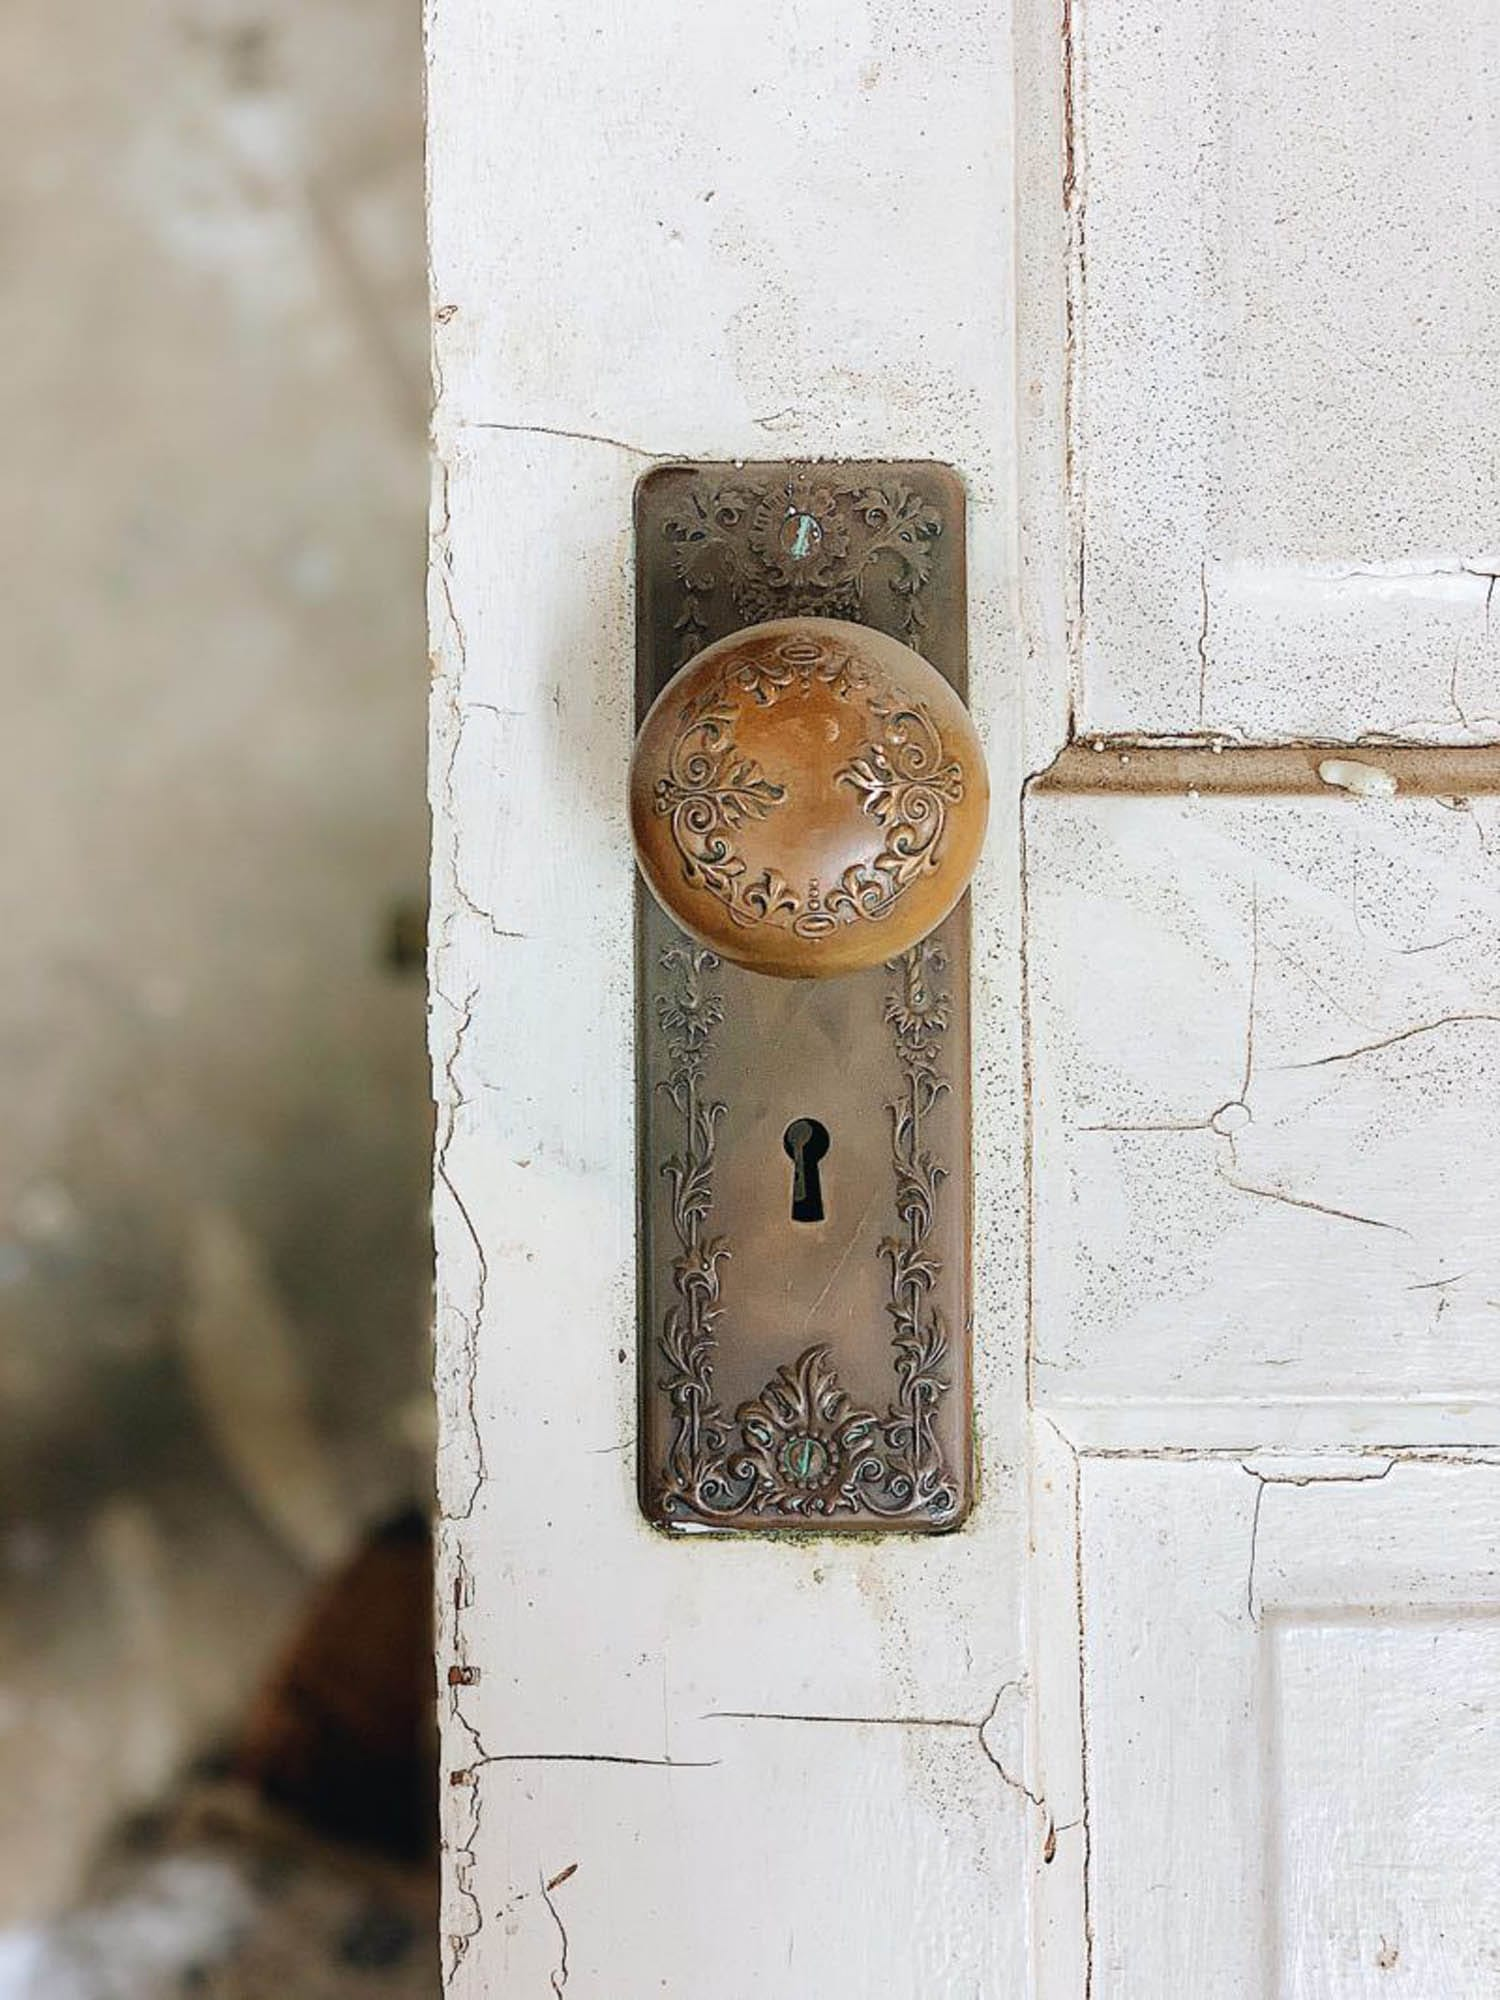 Antique doorknob